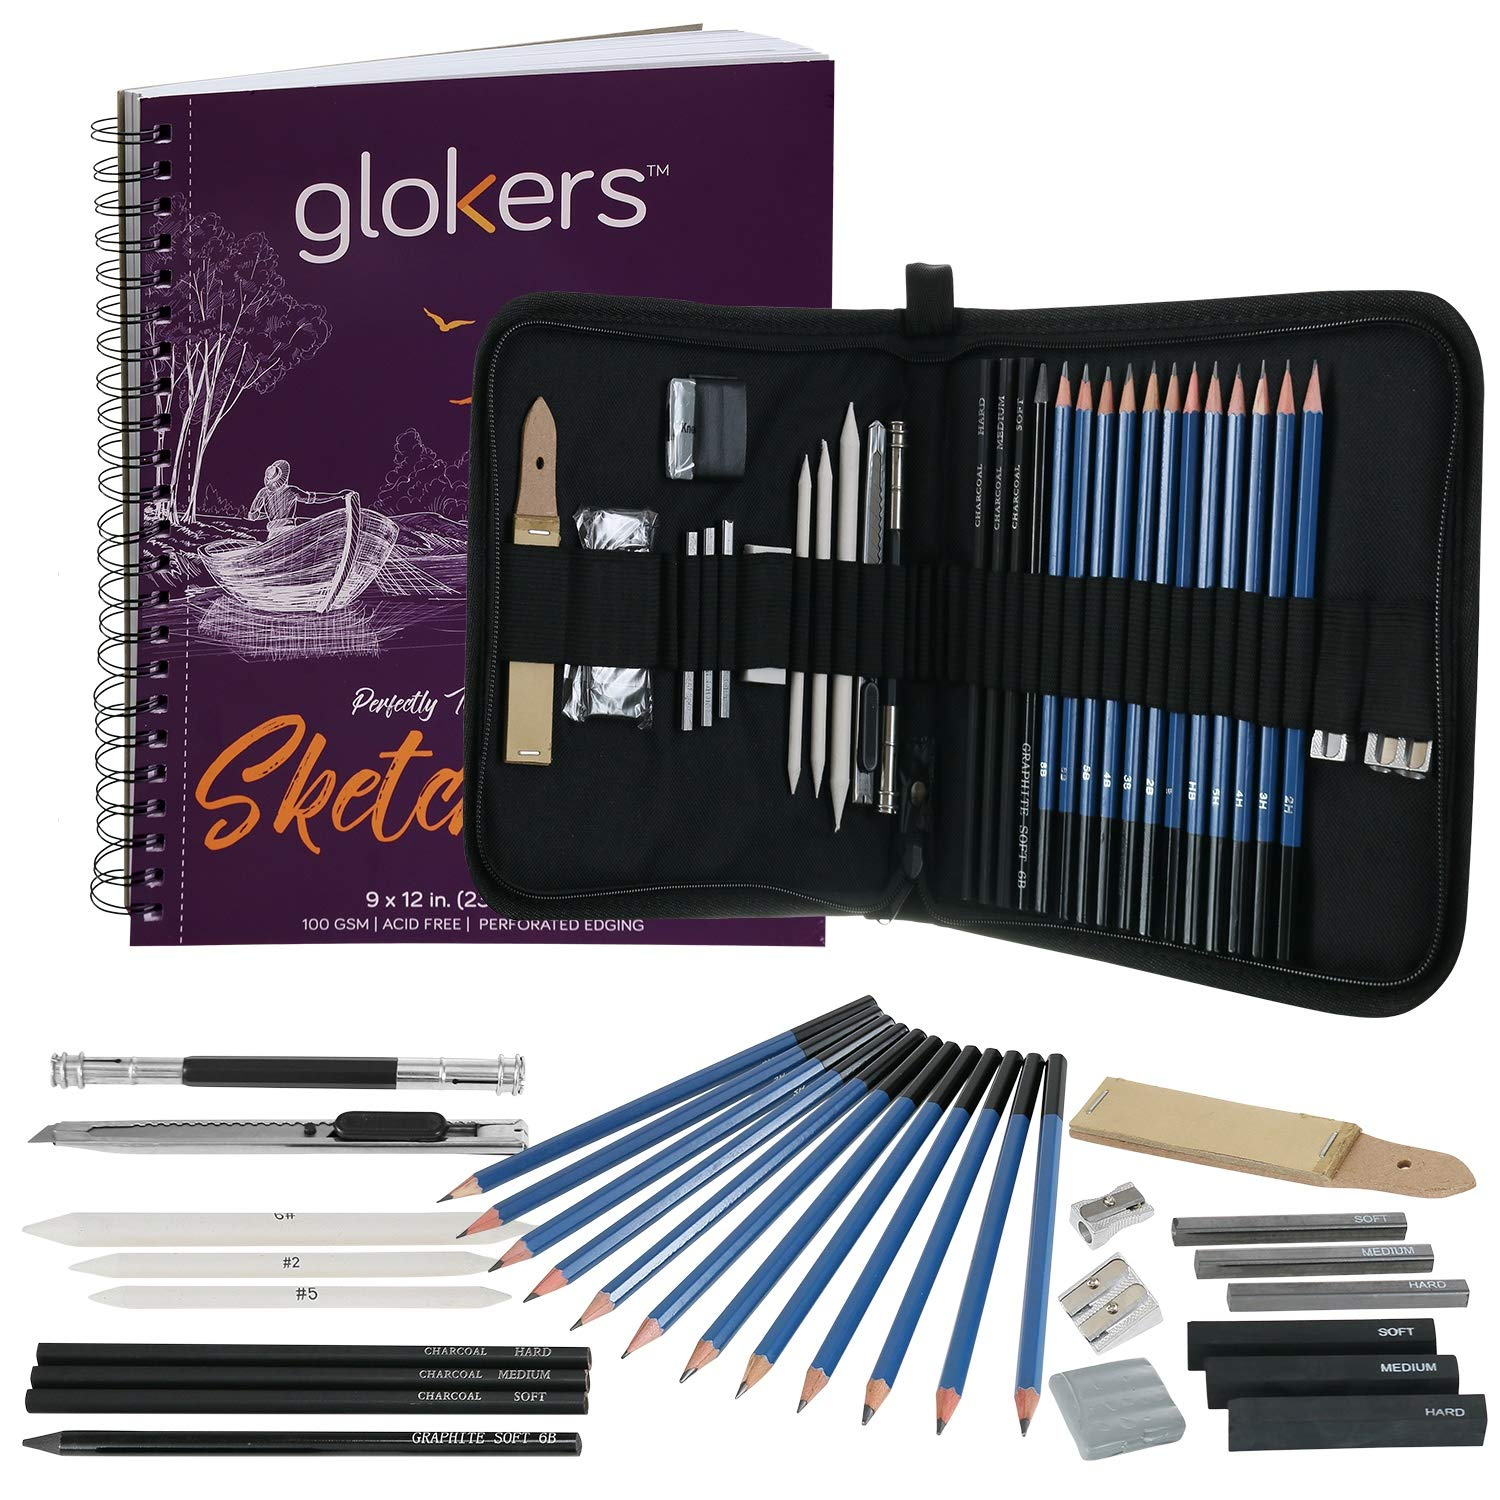 33-Piece Sketching Art Supplies Set by Glokers - Shading, Sketching & Drawing Pencils - 100 Sheet Sketch Pad, Eraser, Smudging Stump, Tortillon Drawing Tool, Sandpaper Block and More